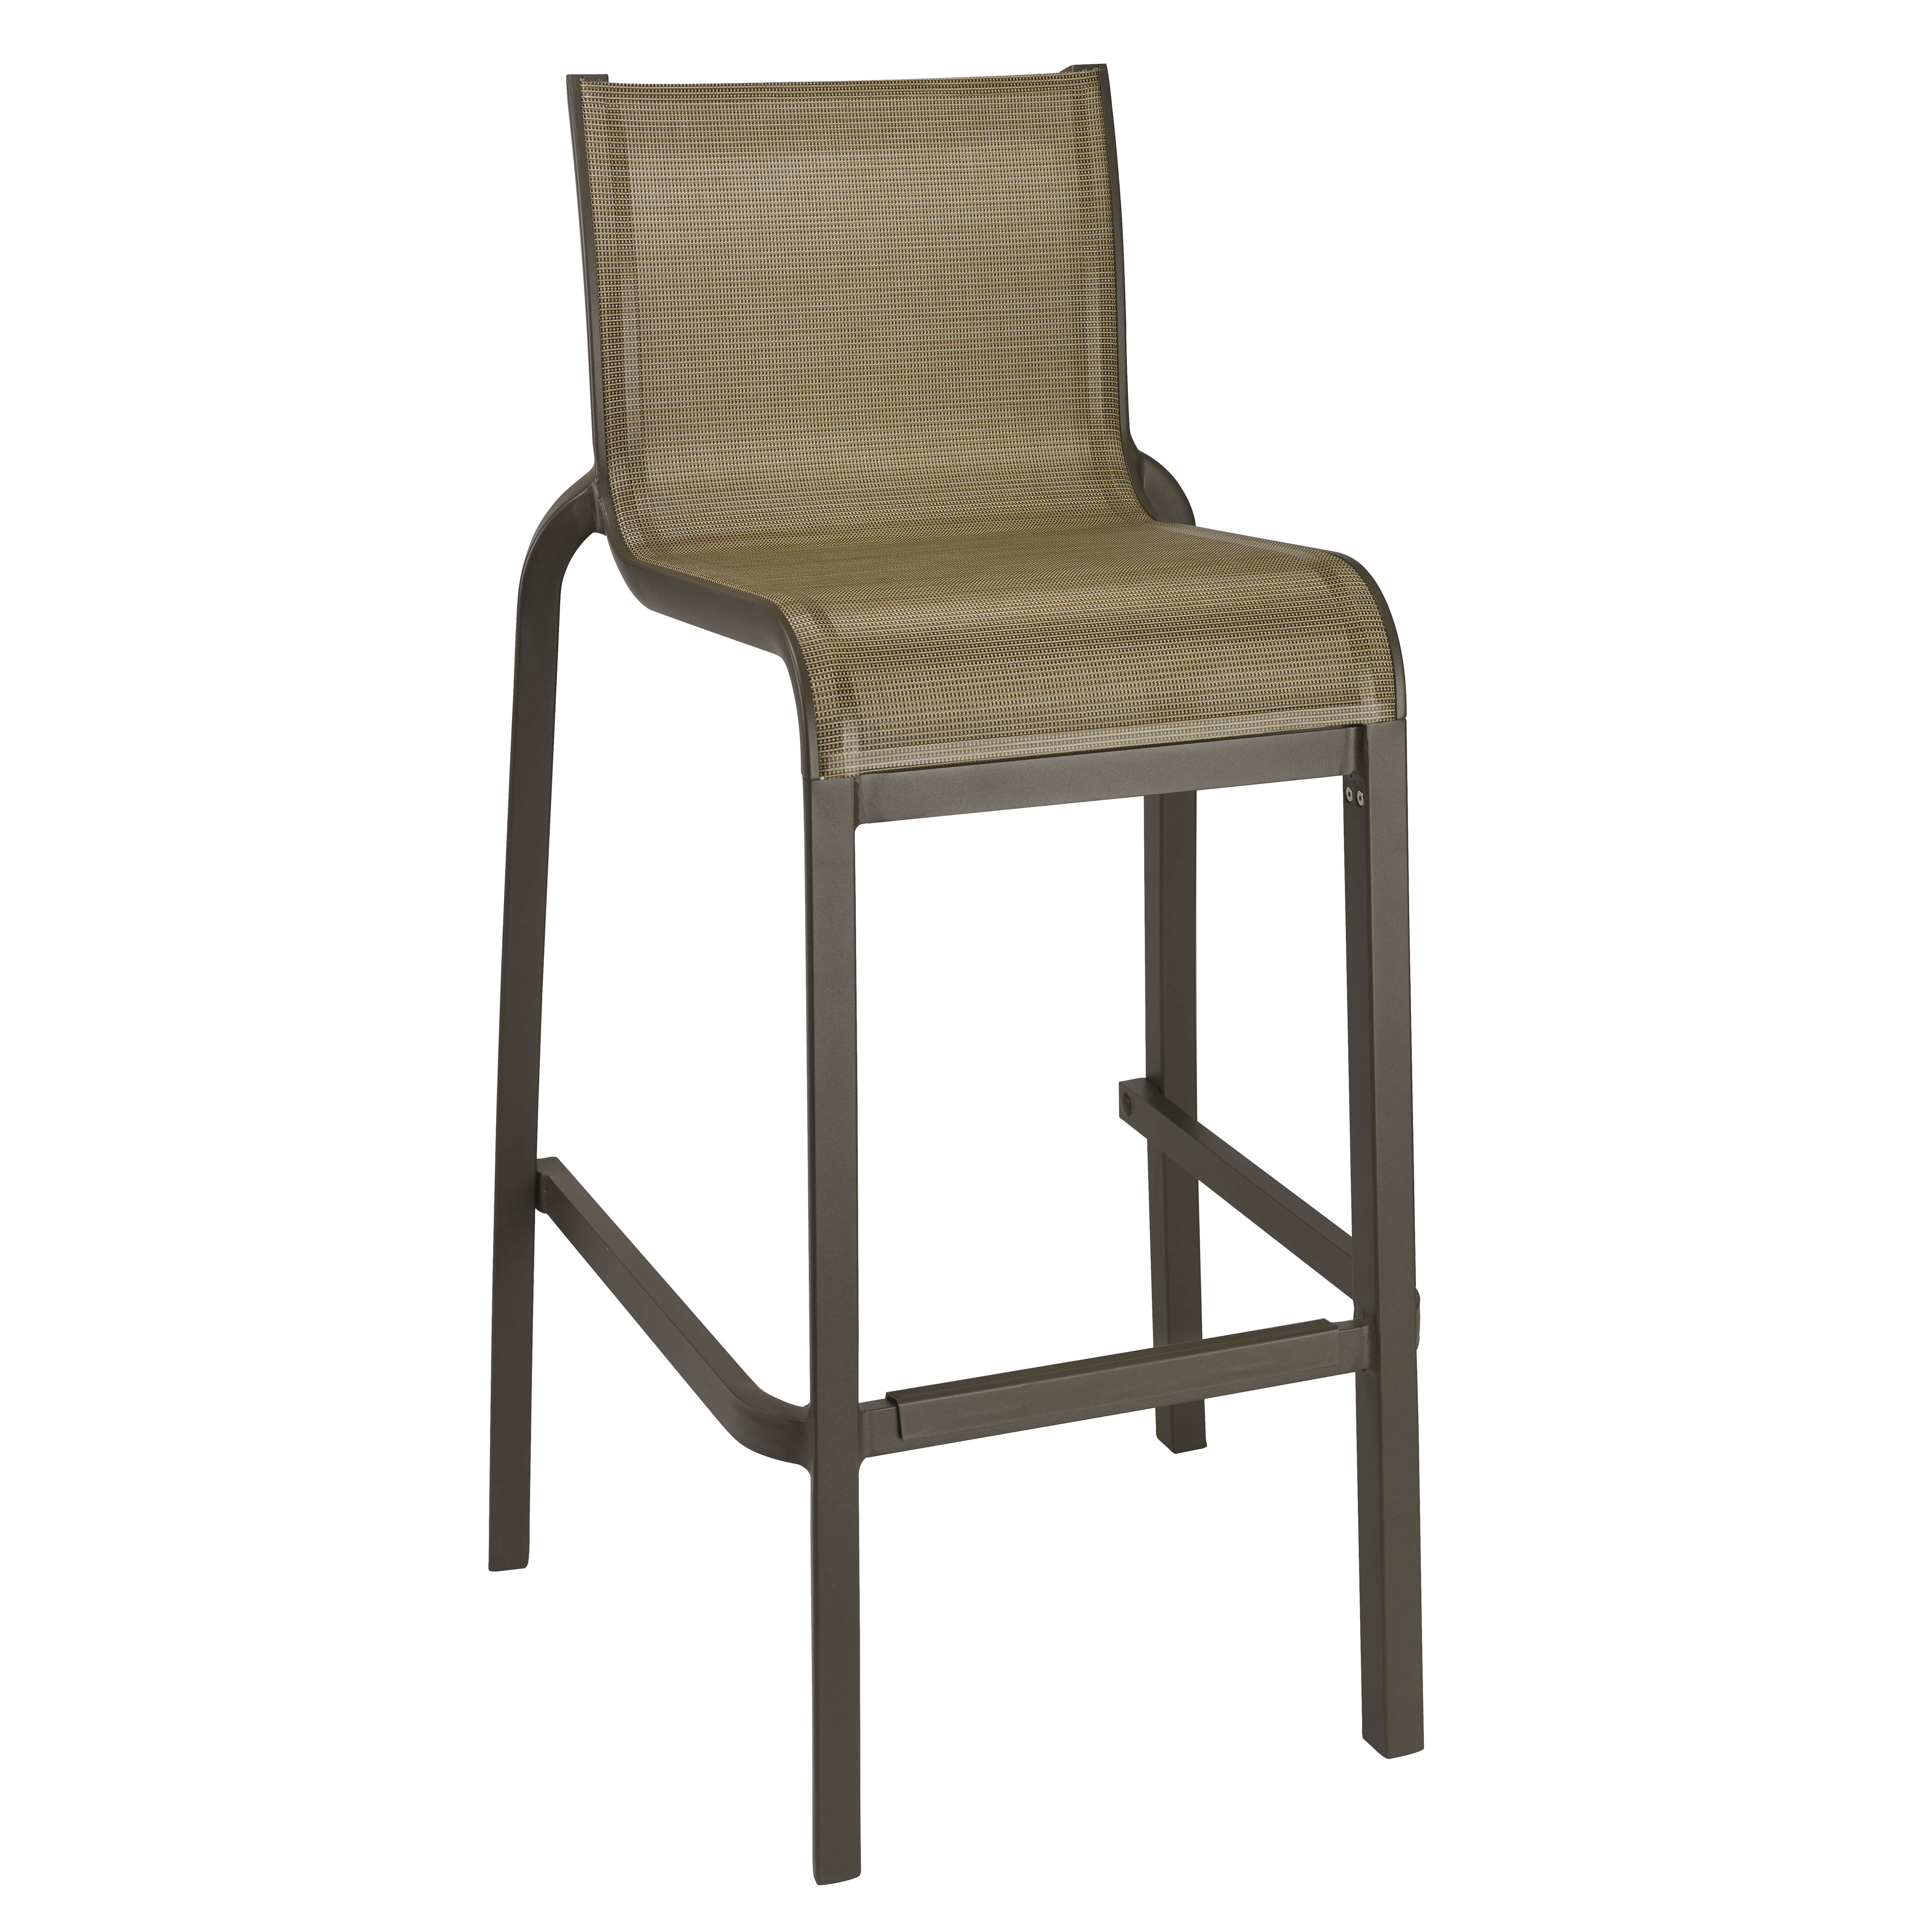 Grosfillex US030599 bar stool, stacking, outdoor